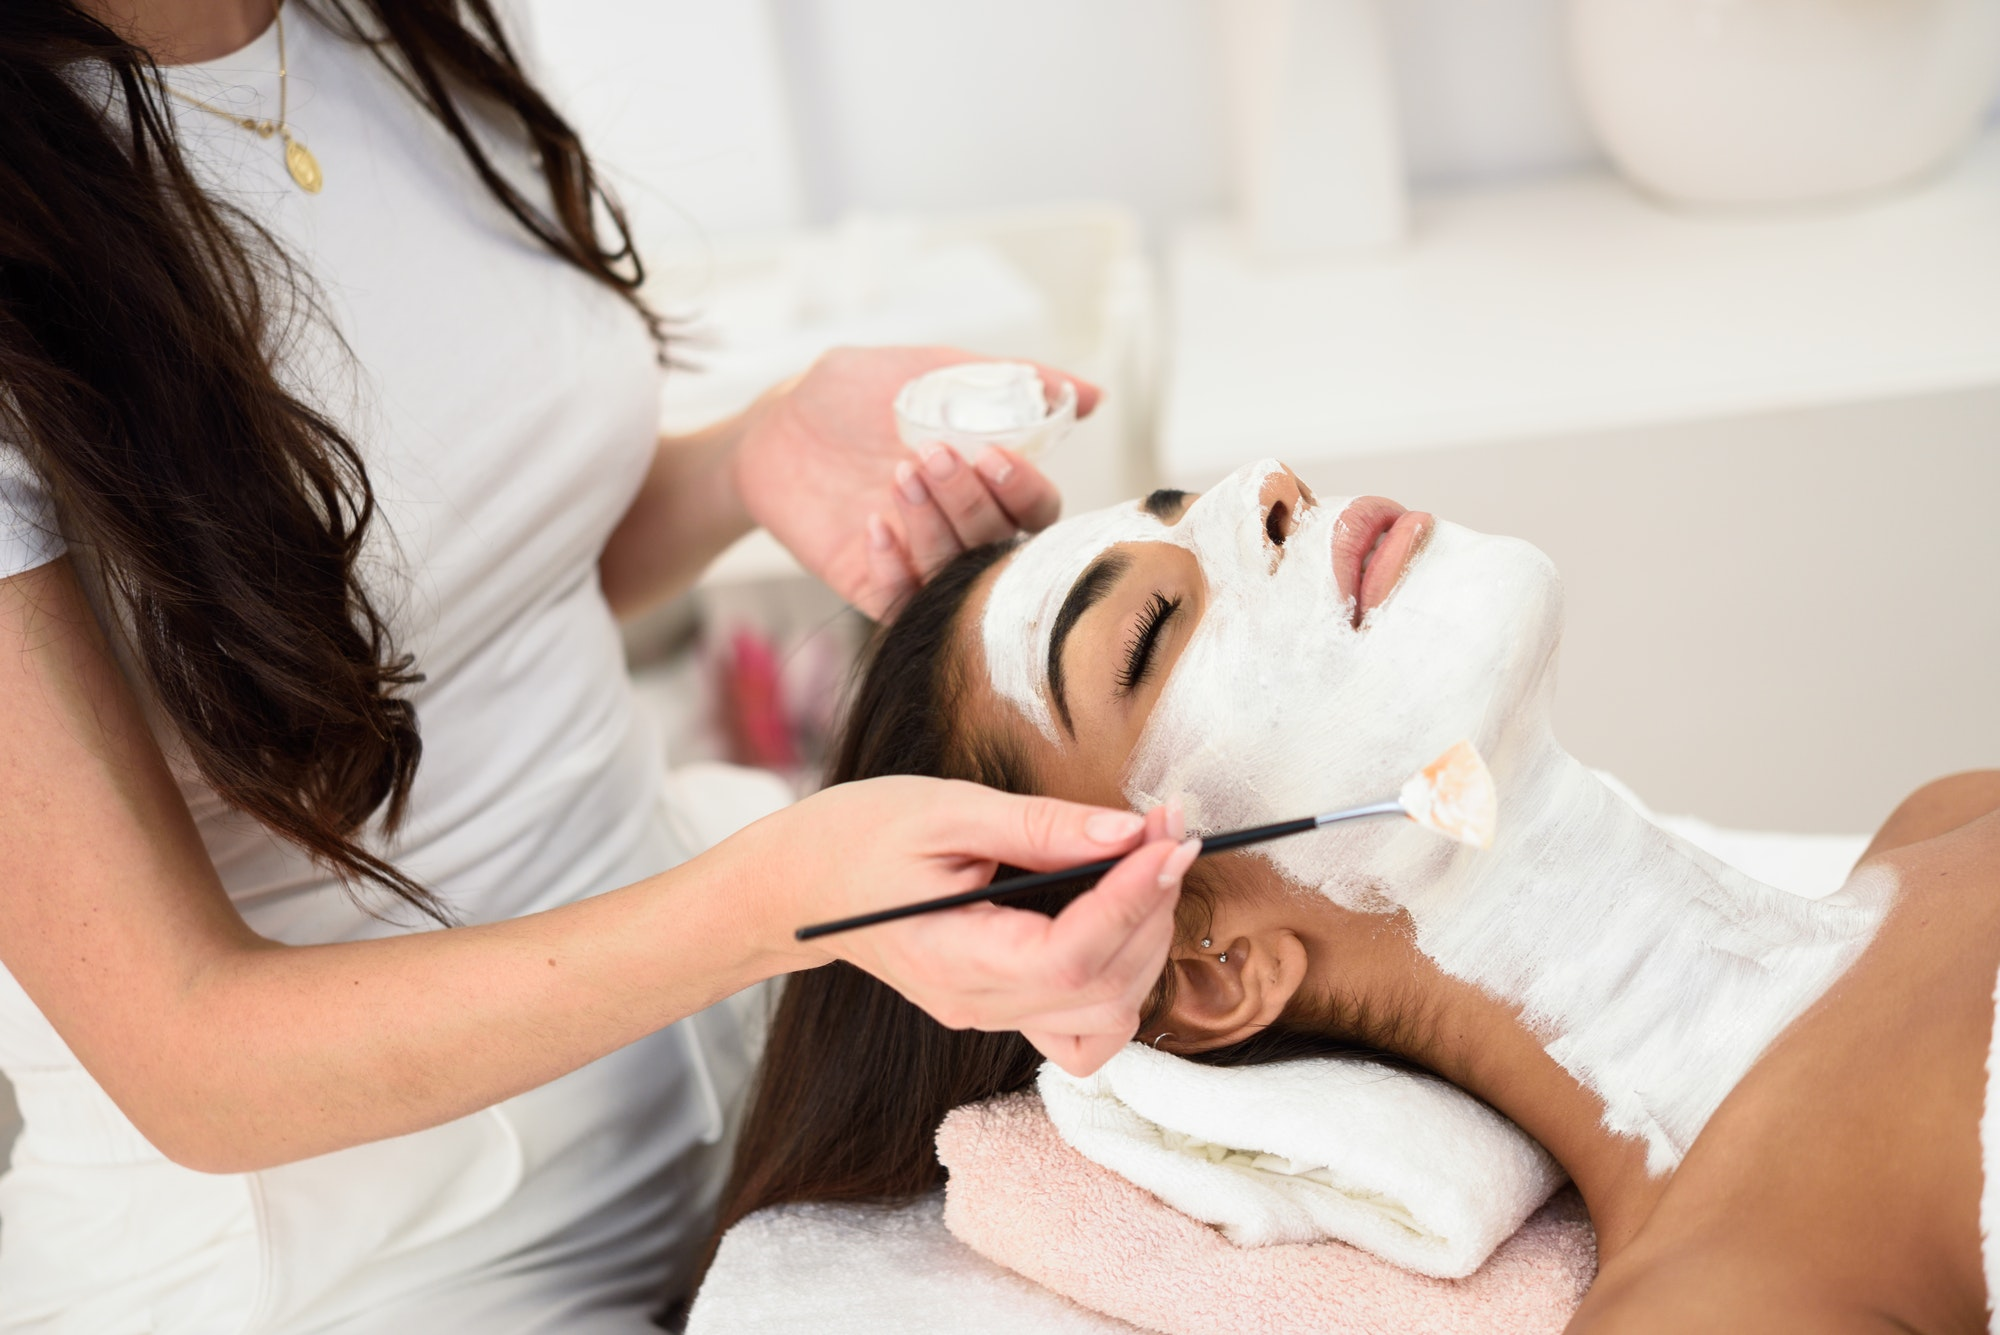 Aesthetics applying a mask to the face of a beautiful woman